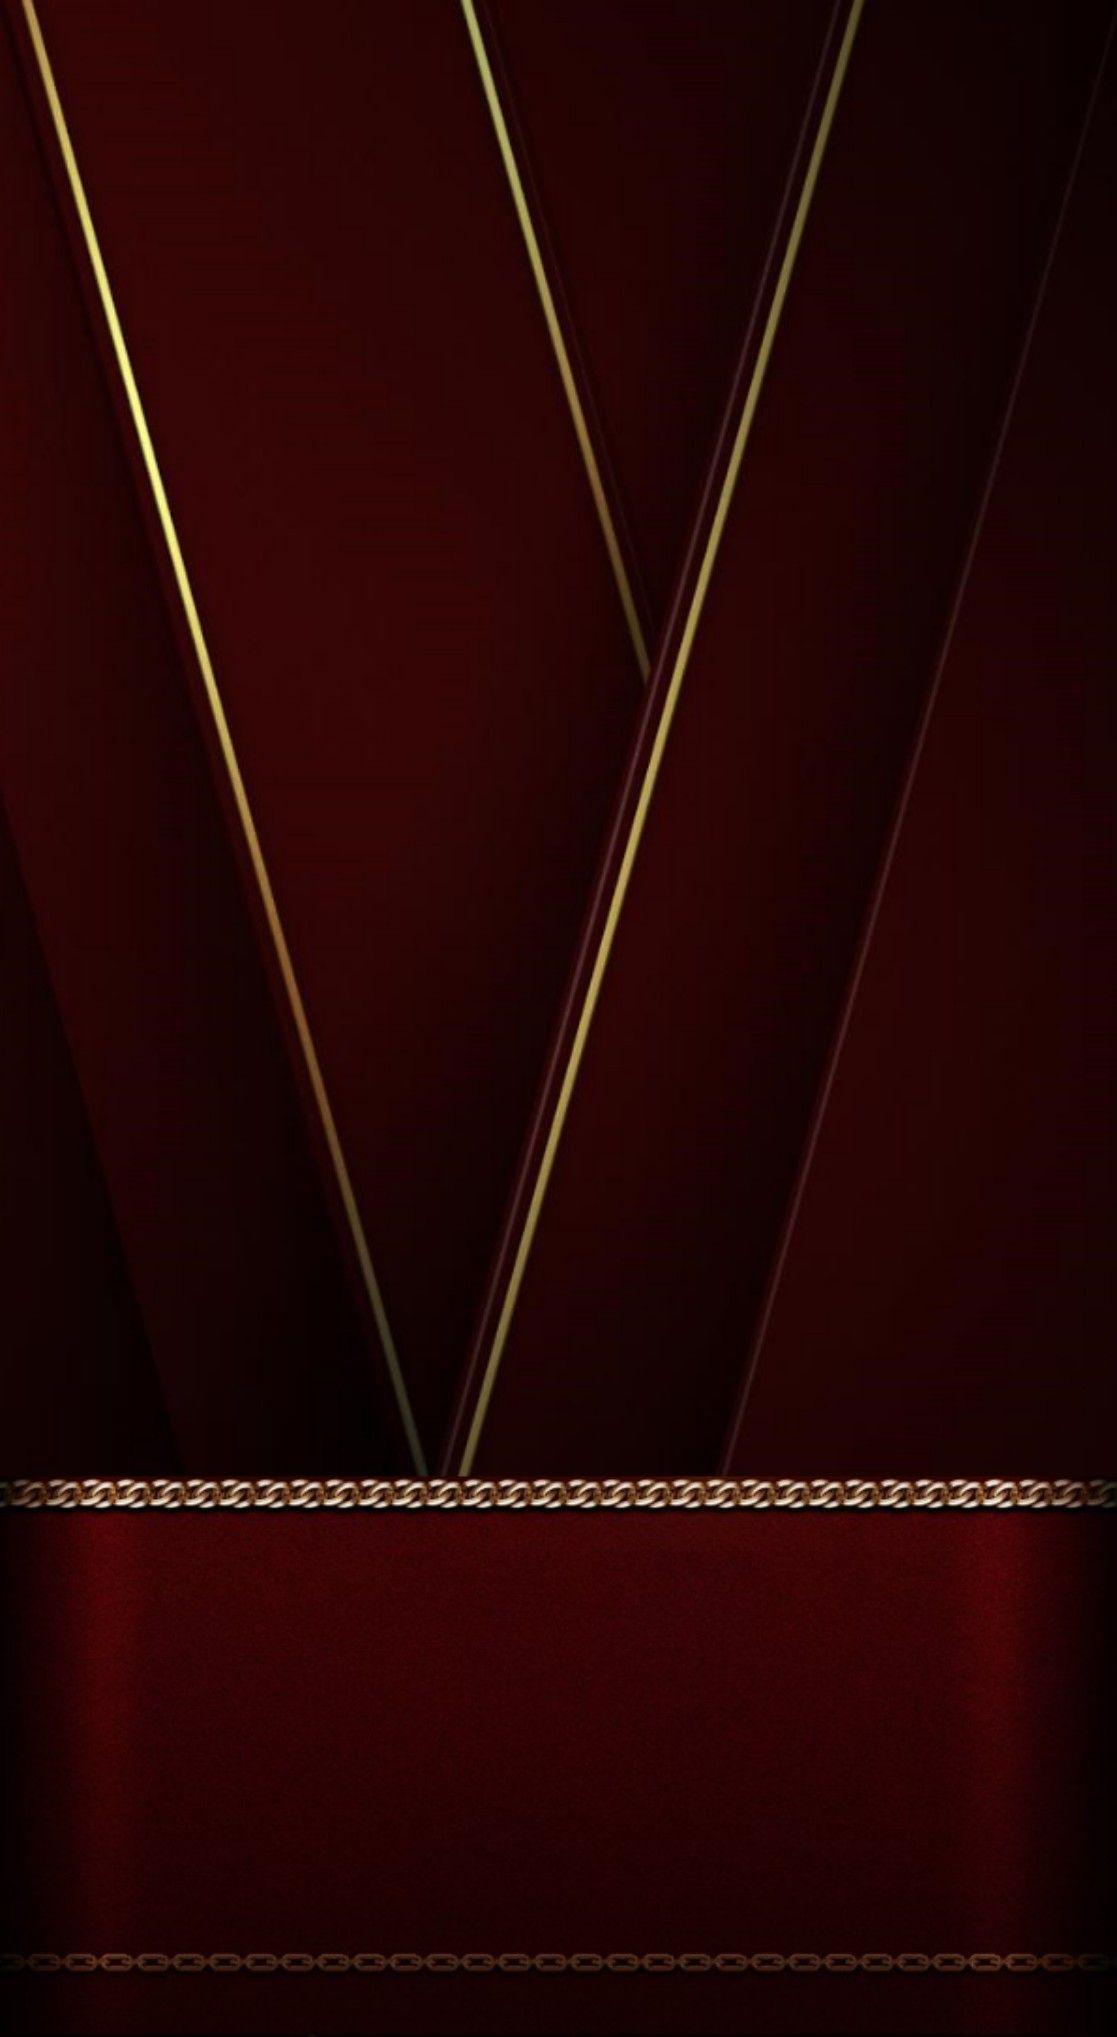 Burgundy With Gold Trim Wallpaper Phone Wallpaper Design Red Wallpaper Iphone Background Wallpaper